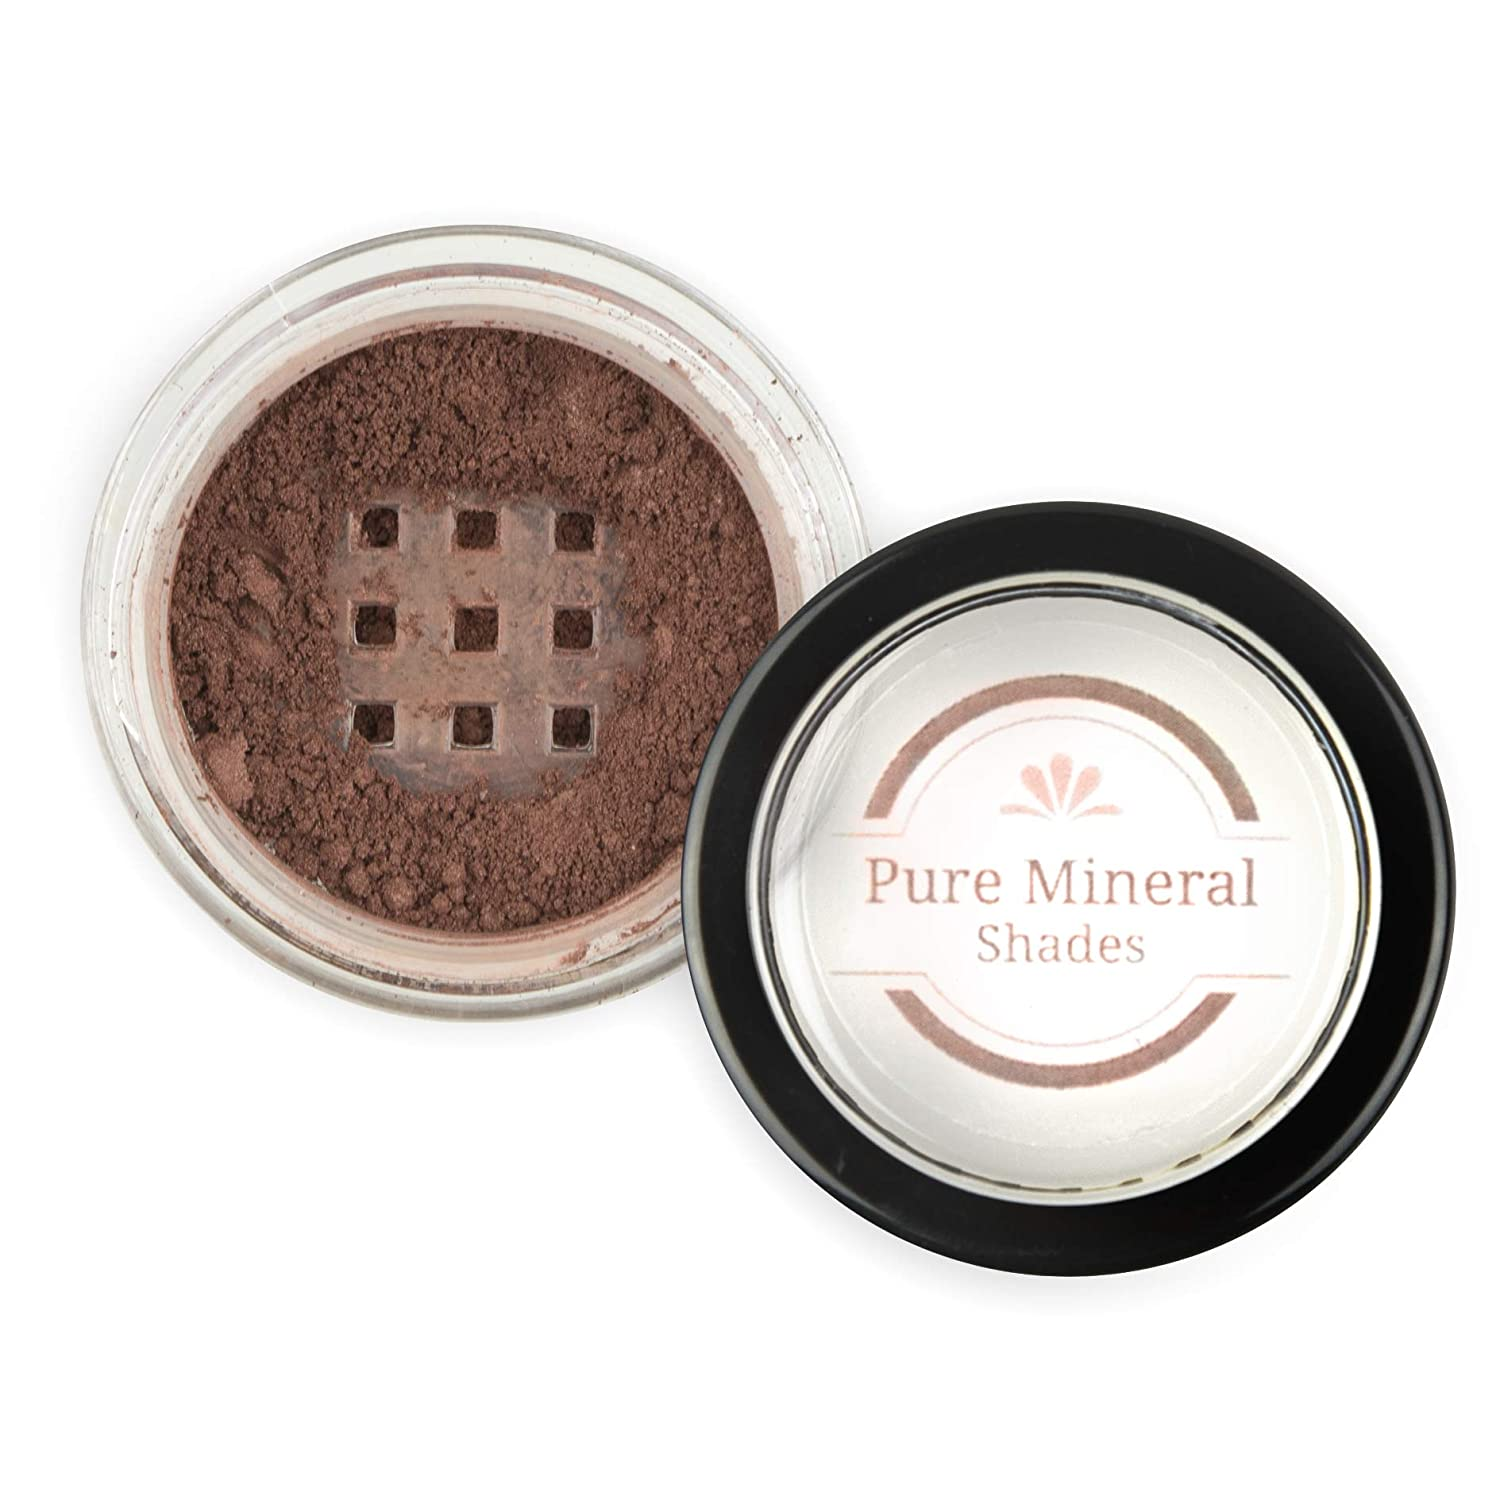 Mineral Eyebrow Powder by NuBeauti - Natural Brow Makeup Kit with Angled Contour Brush for Precision Sculpting to Color Eyebrows Precisely for Beautiful Perfect Professional Brows - (Dark Auburn)